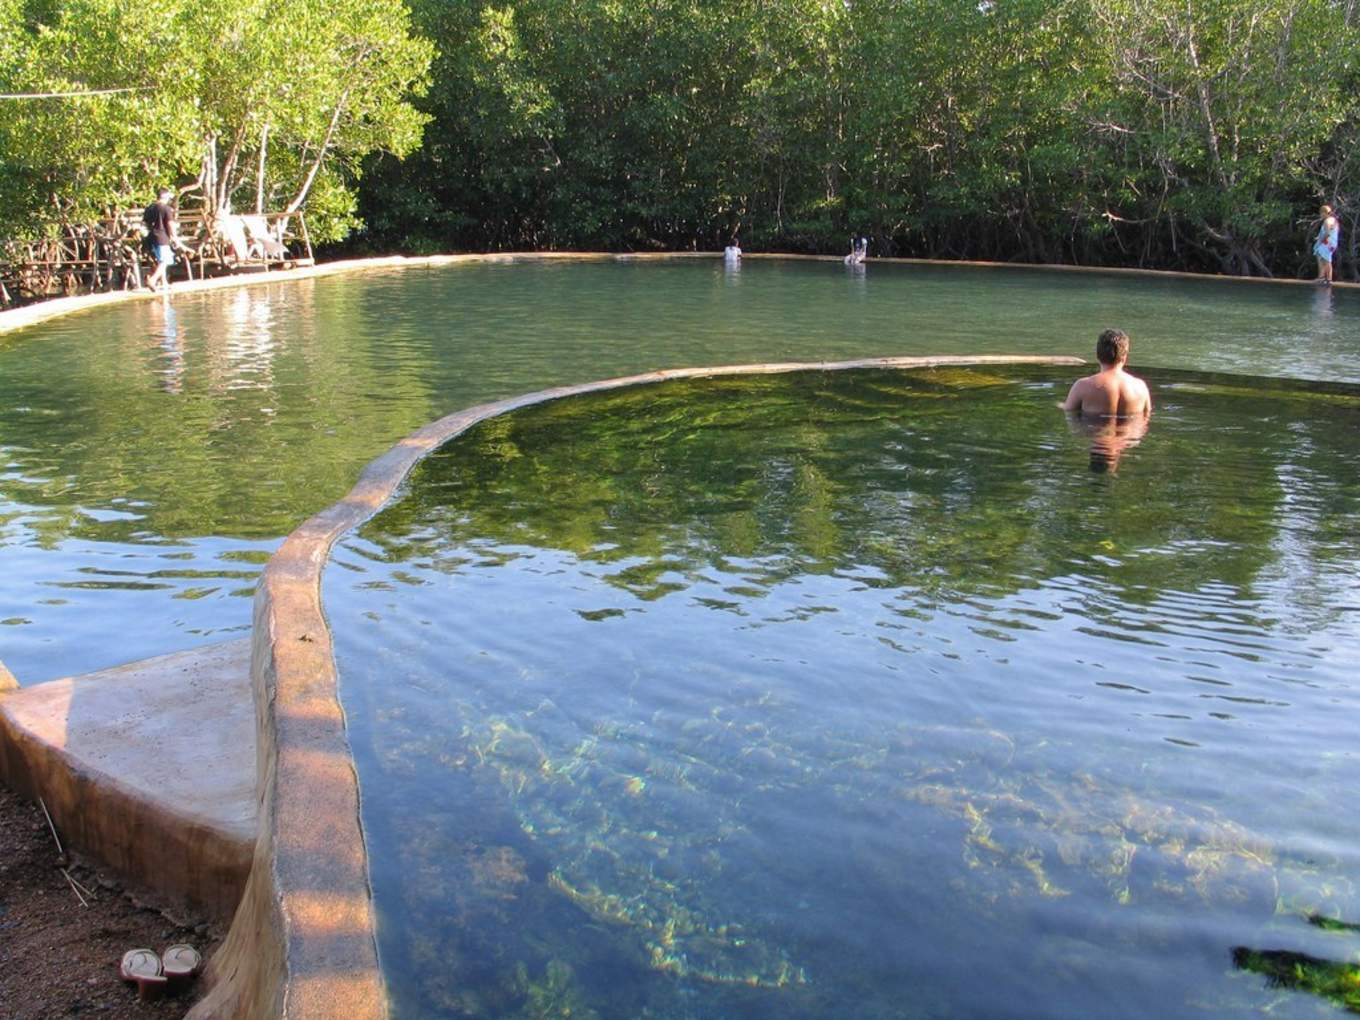 圖片取自https://outoftownblog.com/maquinit-hot-springs-in-coron-palawan/